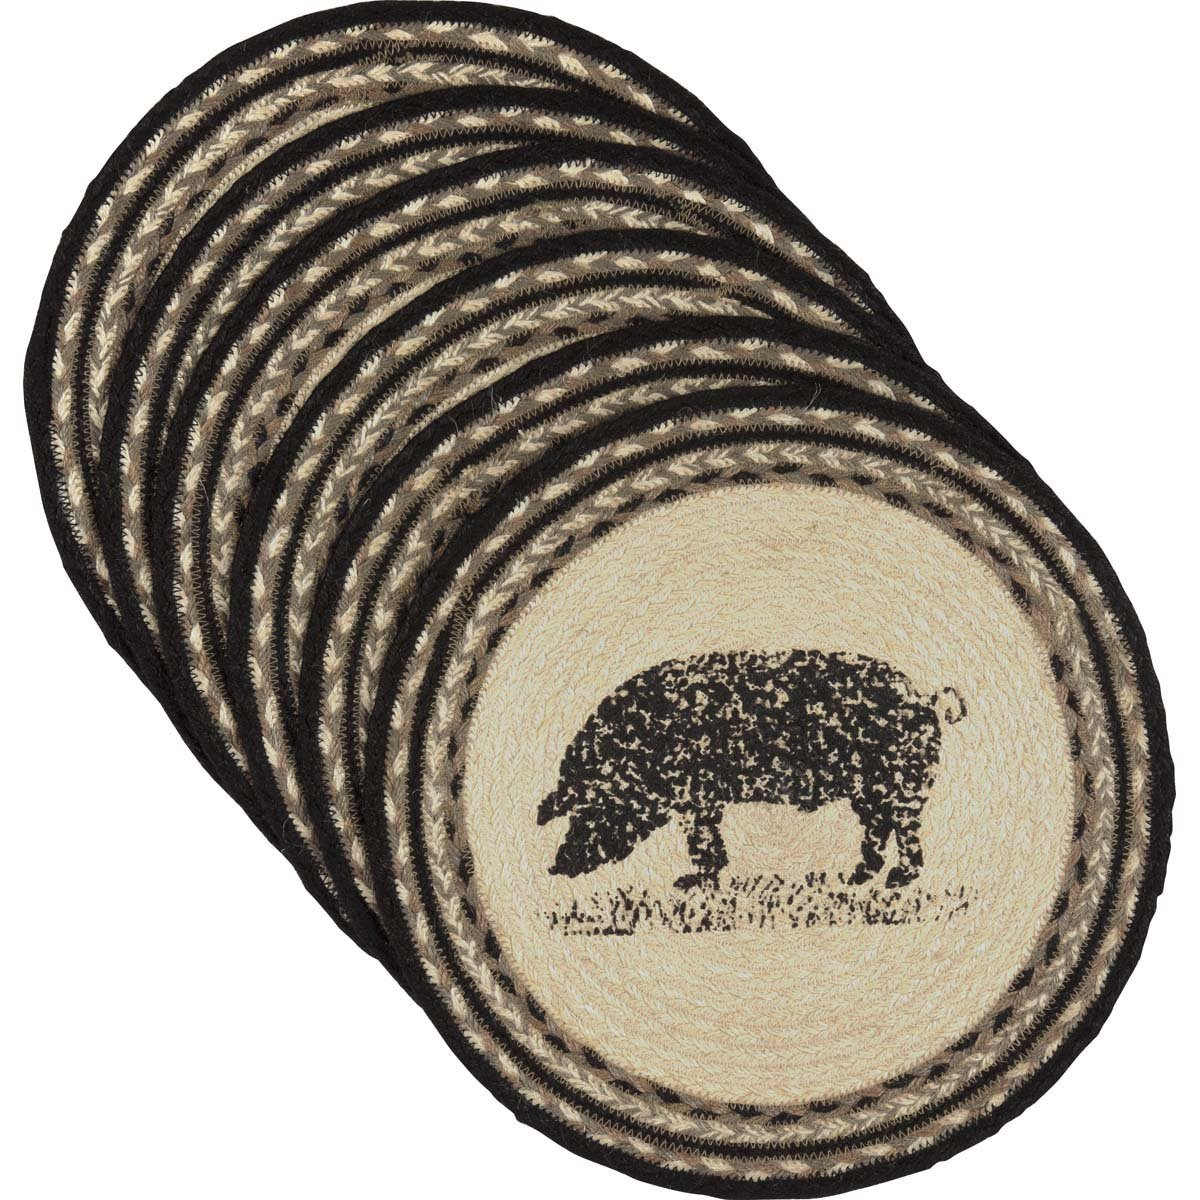 VHC Brands 34286 Classic Country Farmhouse Tabletop & Kitchen-Sawyer Mill White Round Jute Tablemat Set of 6, One Size, Pig by Unknown (Image #1)